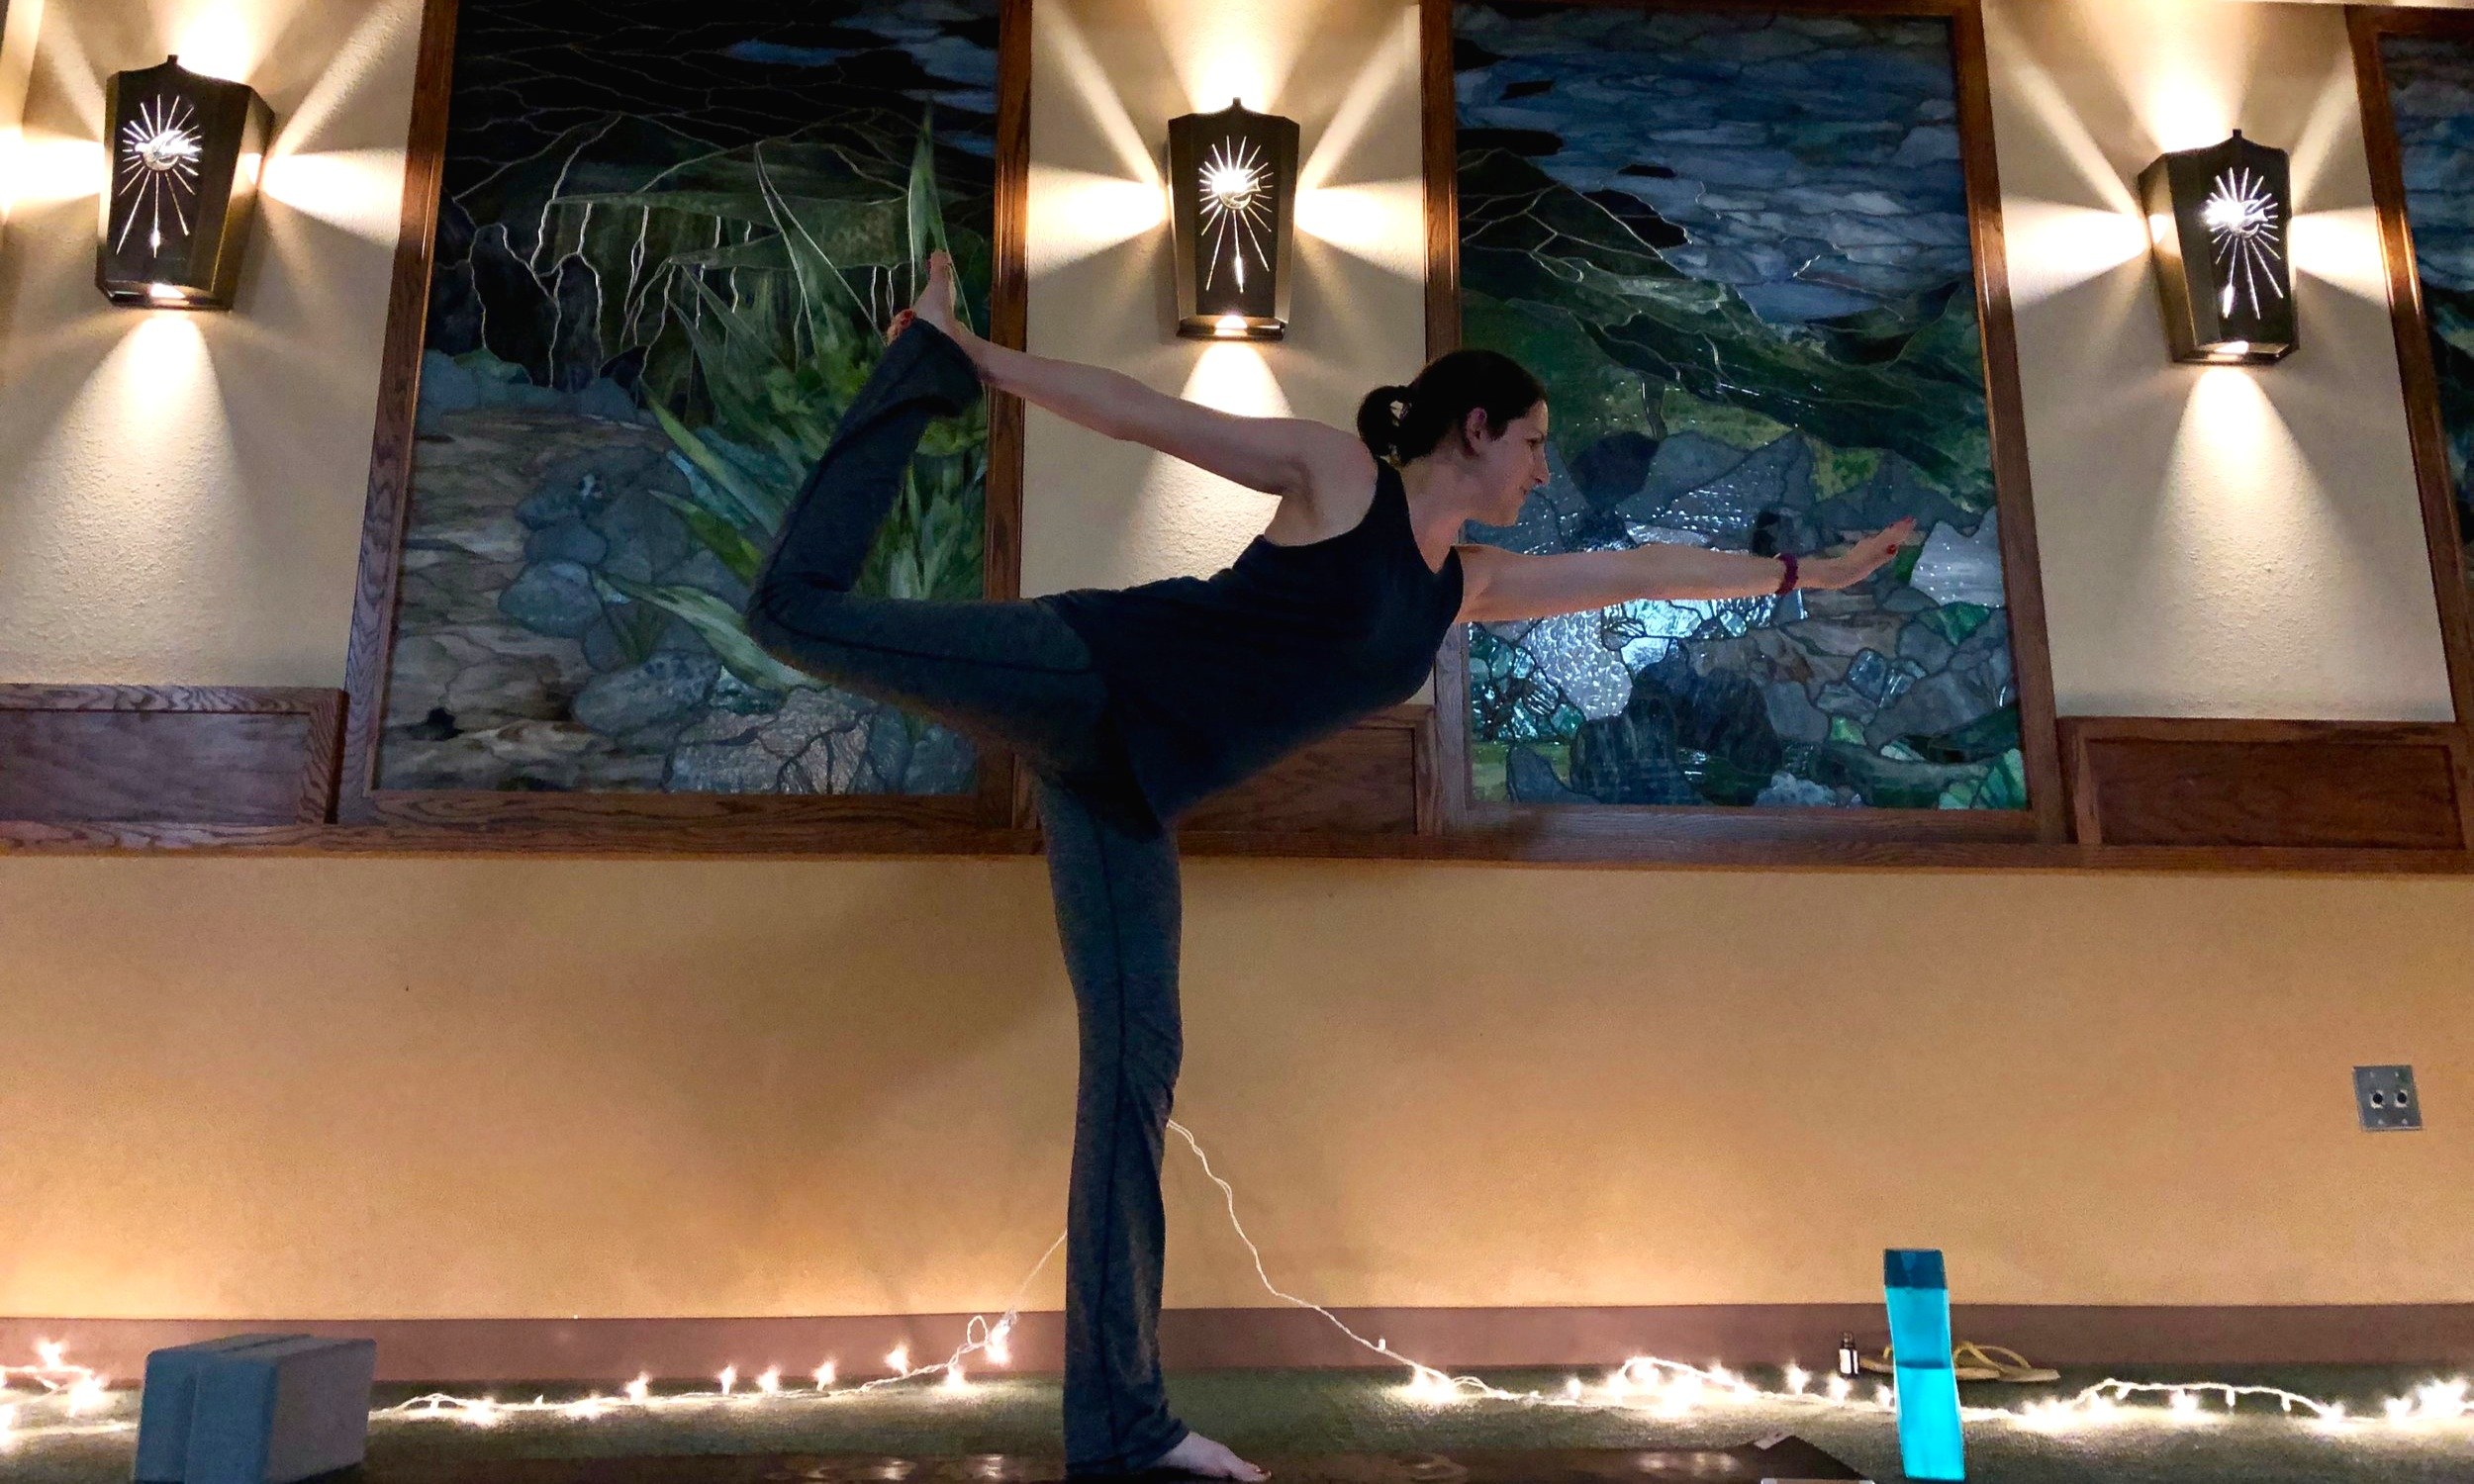 Teresa Danner - Yoga Instructor and Occupational Therapist   Can work with cognitive, physical, and sensory boundaries to your mental and emotional health.